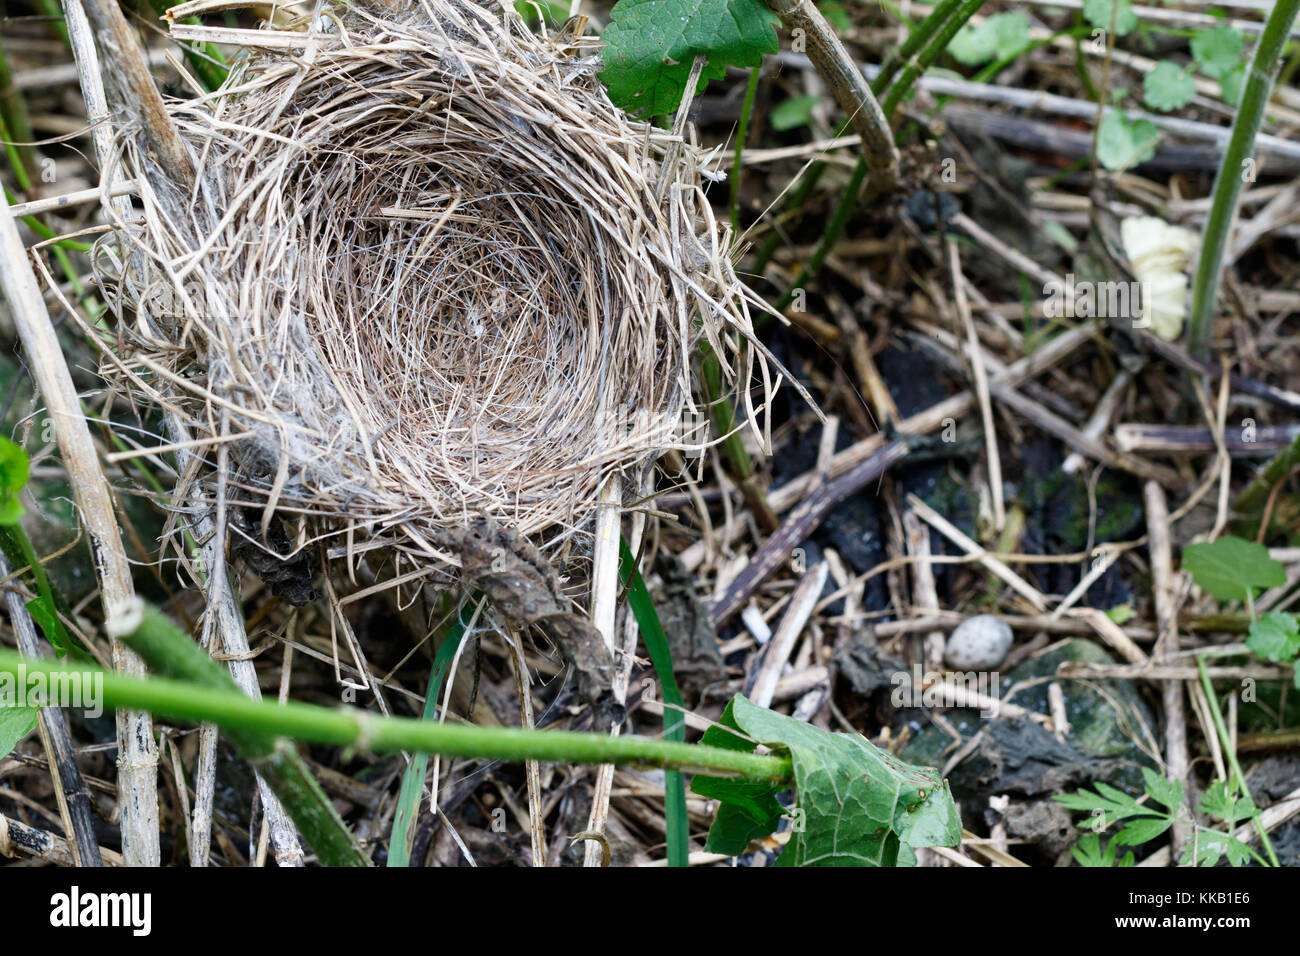 Acrocephalus palustris. The nest of the Marsh Warbler in nature. Common Cuckoo (Cuculus canorus). Russia, the Ryazan - Stock Image